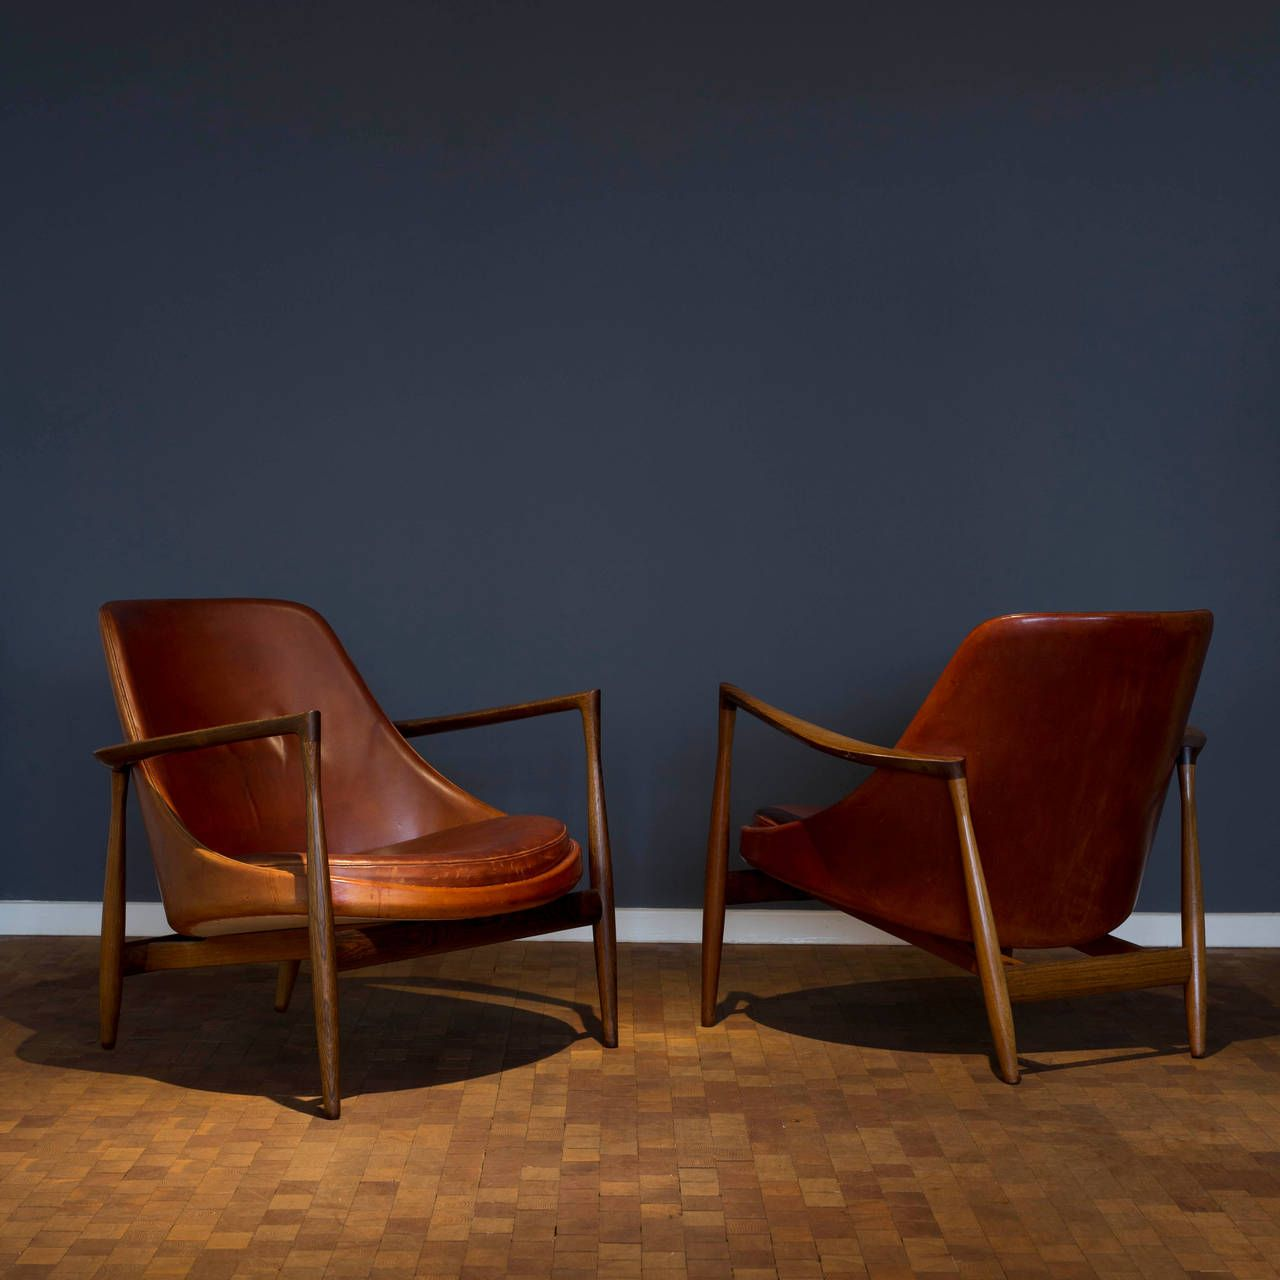 Pair of Ib KofodLarsen Rosewood Elizabeth Chairs for Christensen and Larsen is part of Chair - View this item and discover similar lounge chairs for sale at 1stdibs  A pair of Ib Kofod Larsen Elizabeth lounge chairs  Exposed frame of Brazilian Rosewood upholstered with natural dyed leather  Designed by Ib Kofod Larsen